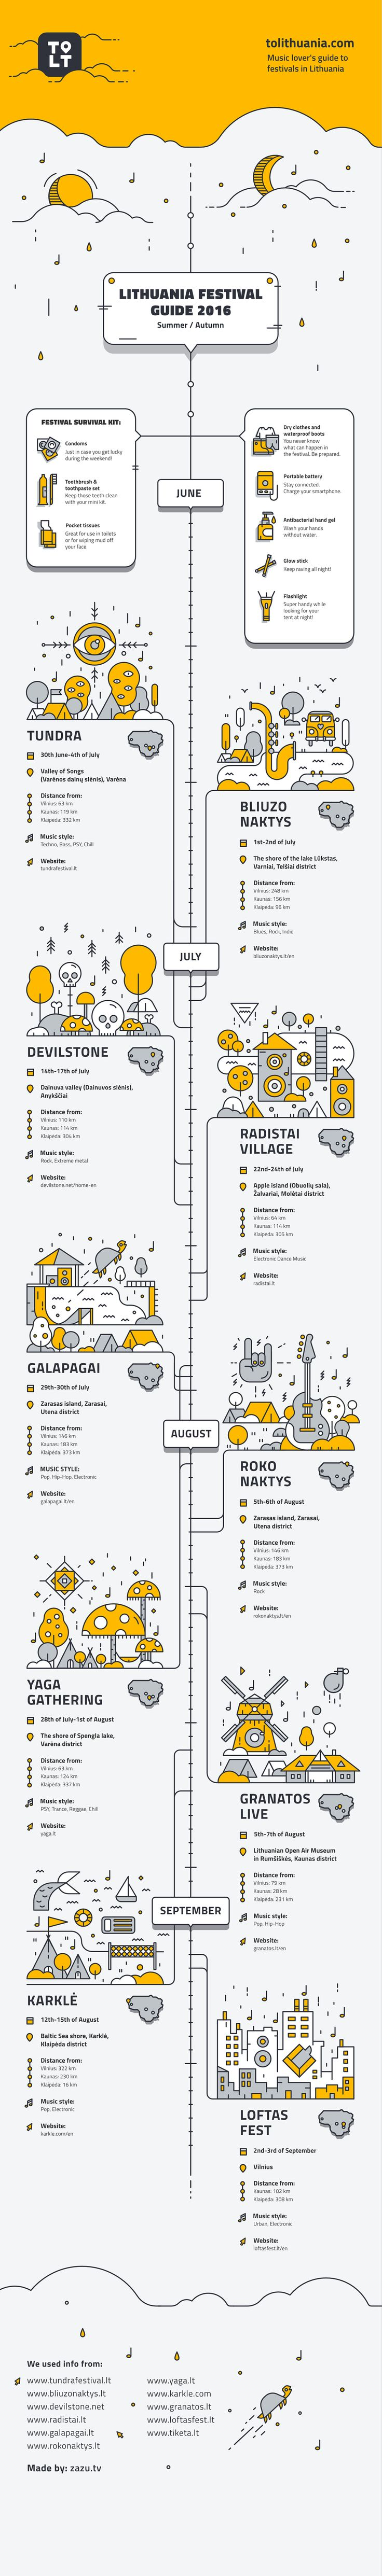 Lithuania Festival Guide on Behance                              …